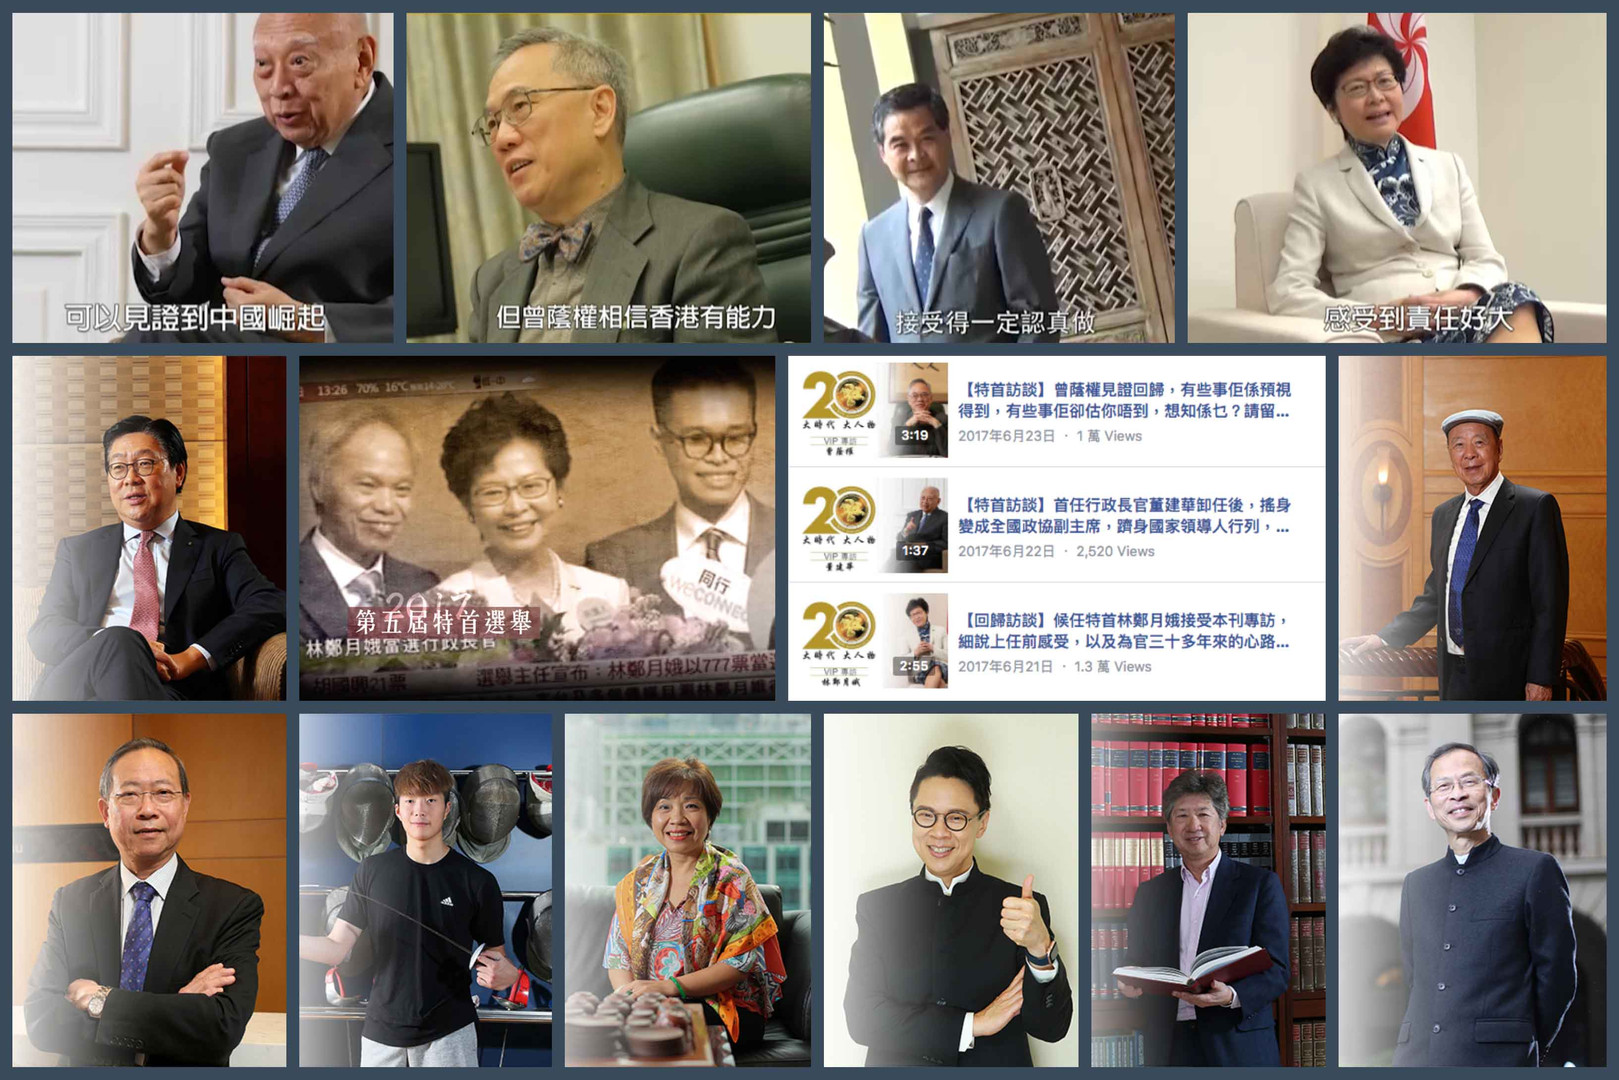 Interview series of the 20th anniversary of the return of Hong Kong